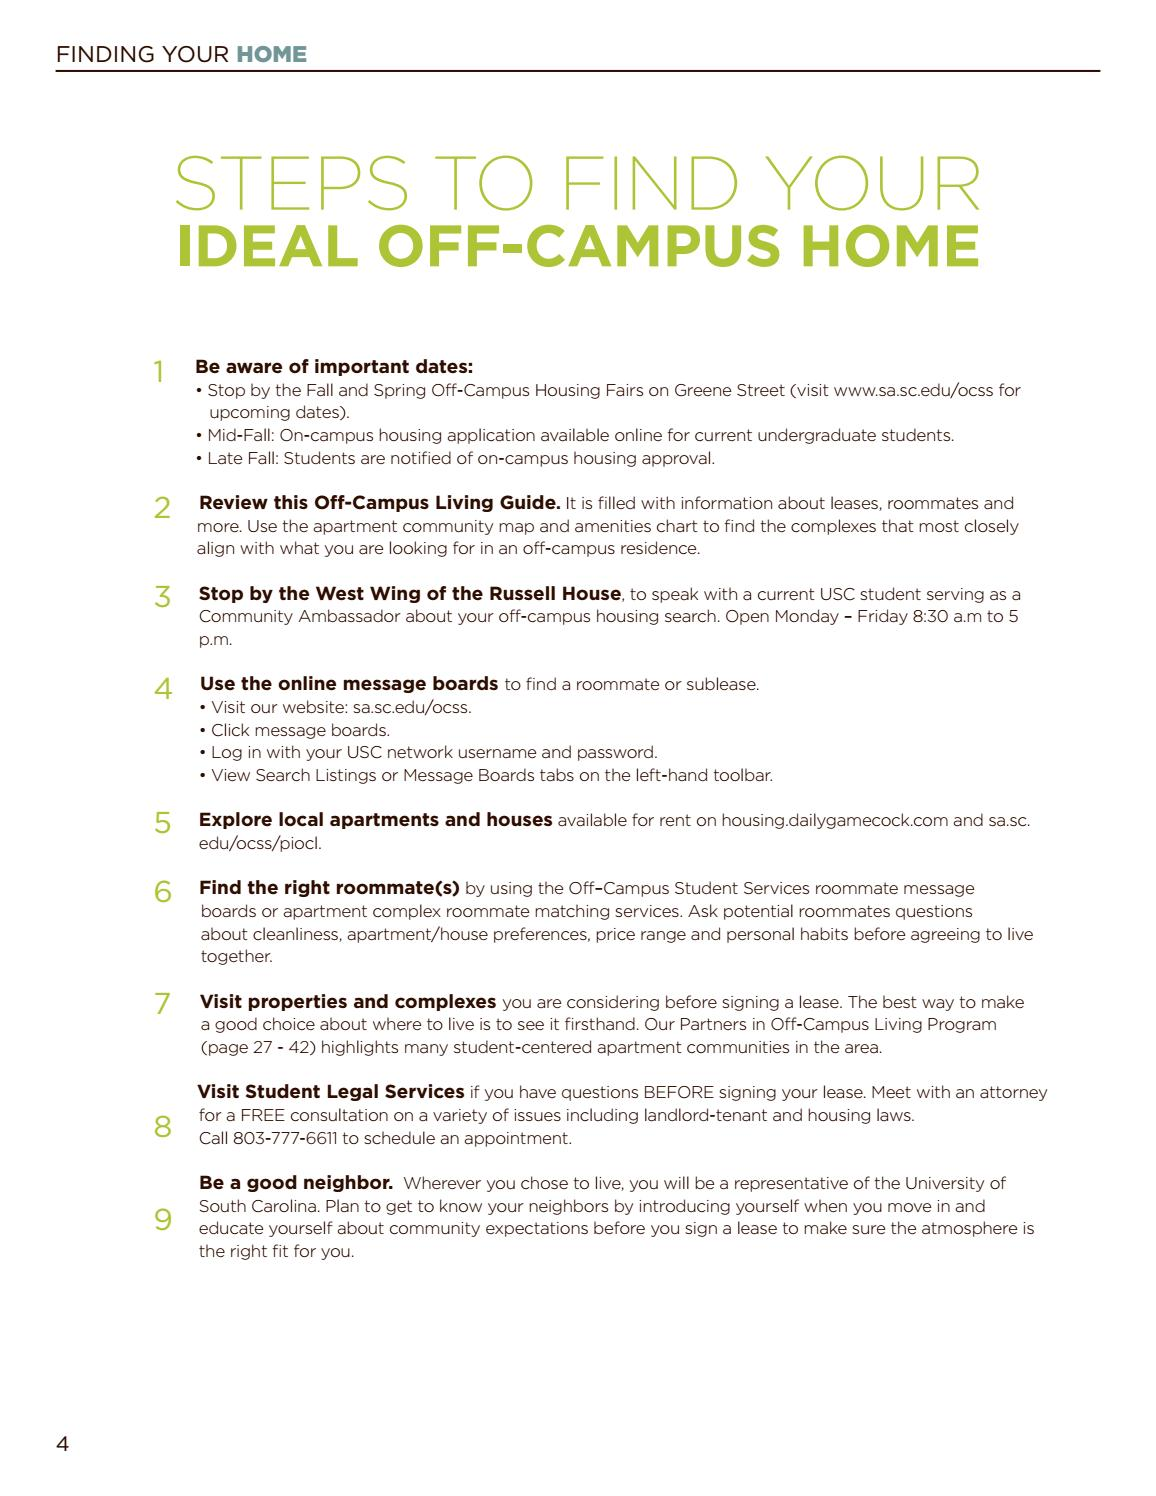 Living On- or Off-Campus: What's Best?